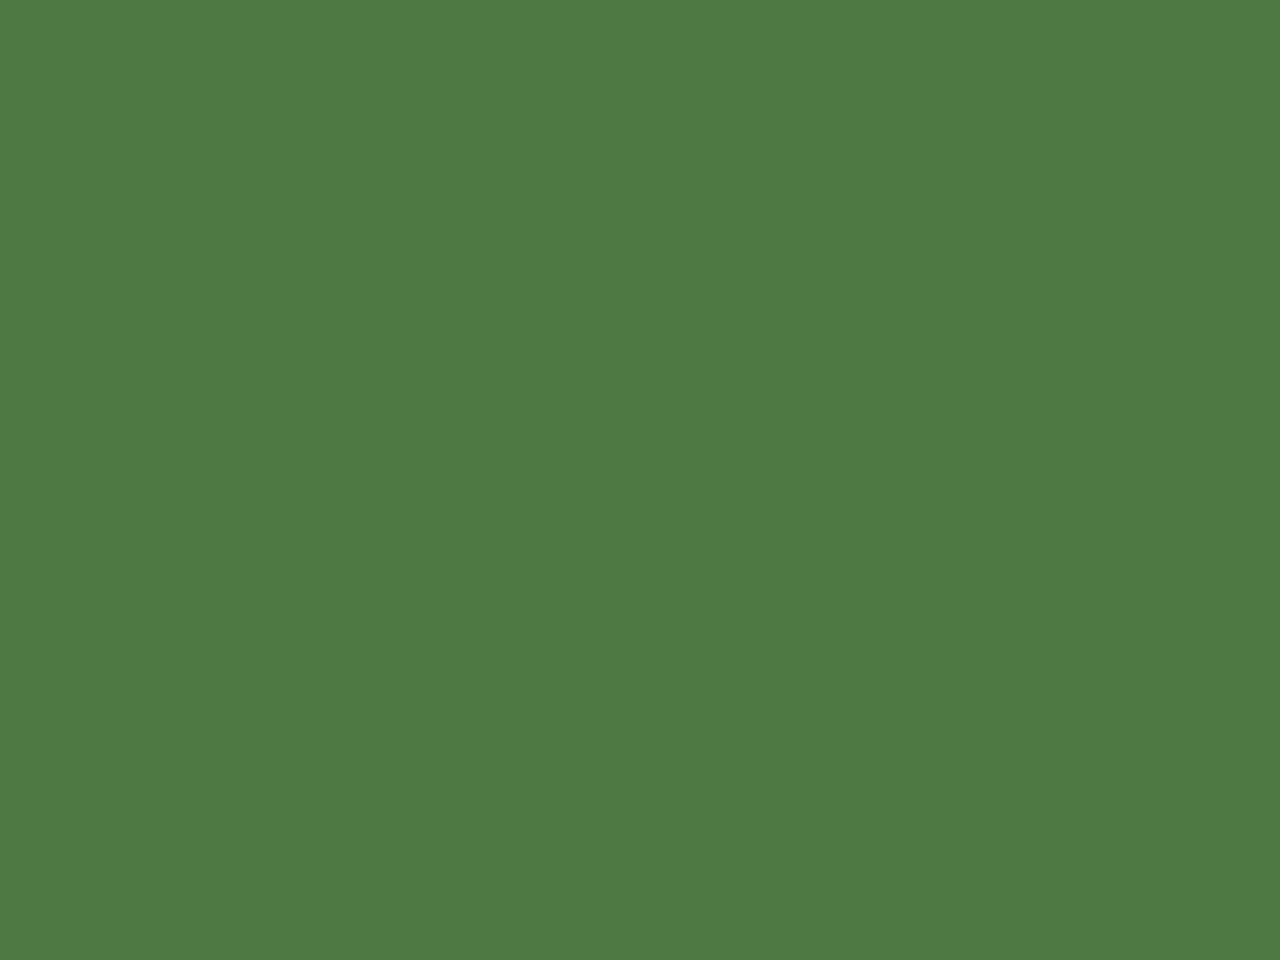 1280x960 Fern Green Solid Color Background